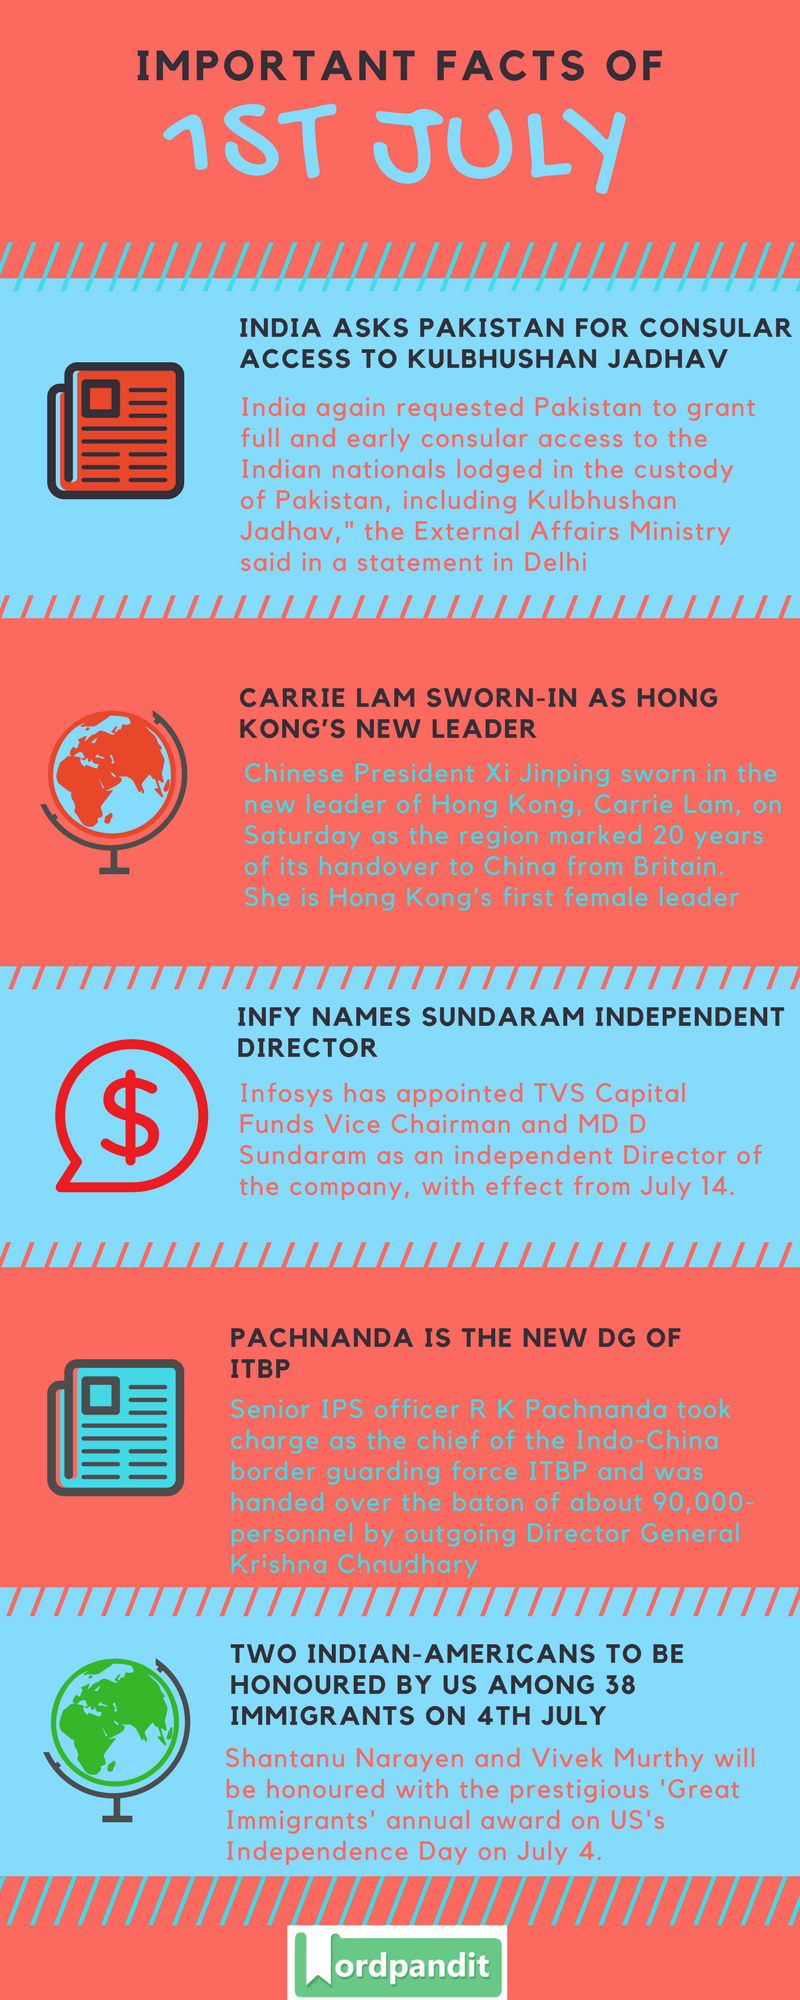 Daily-Current-Affairs-1-july-2017-and-Current-Affairs-Infographic-1-july-2017